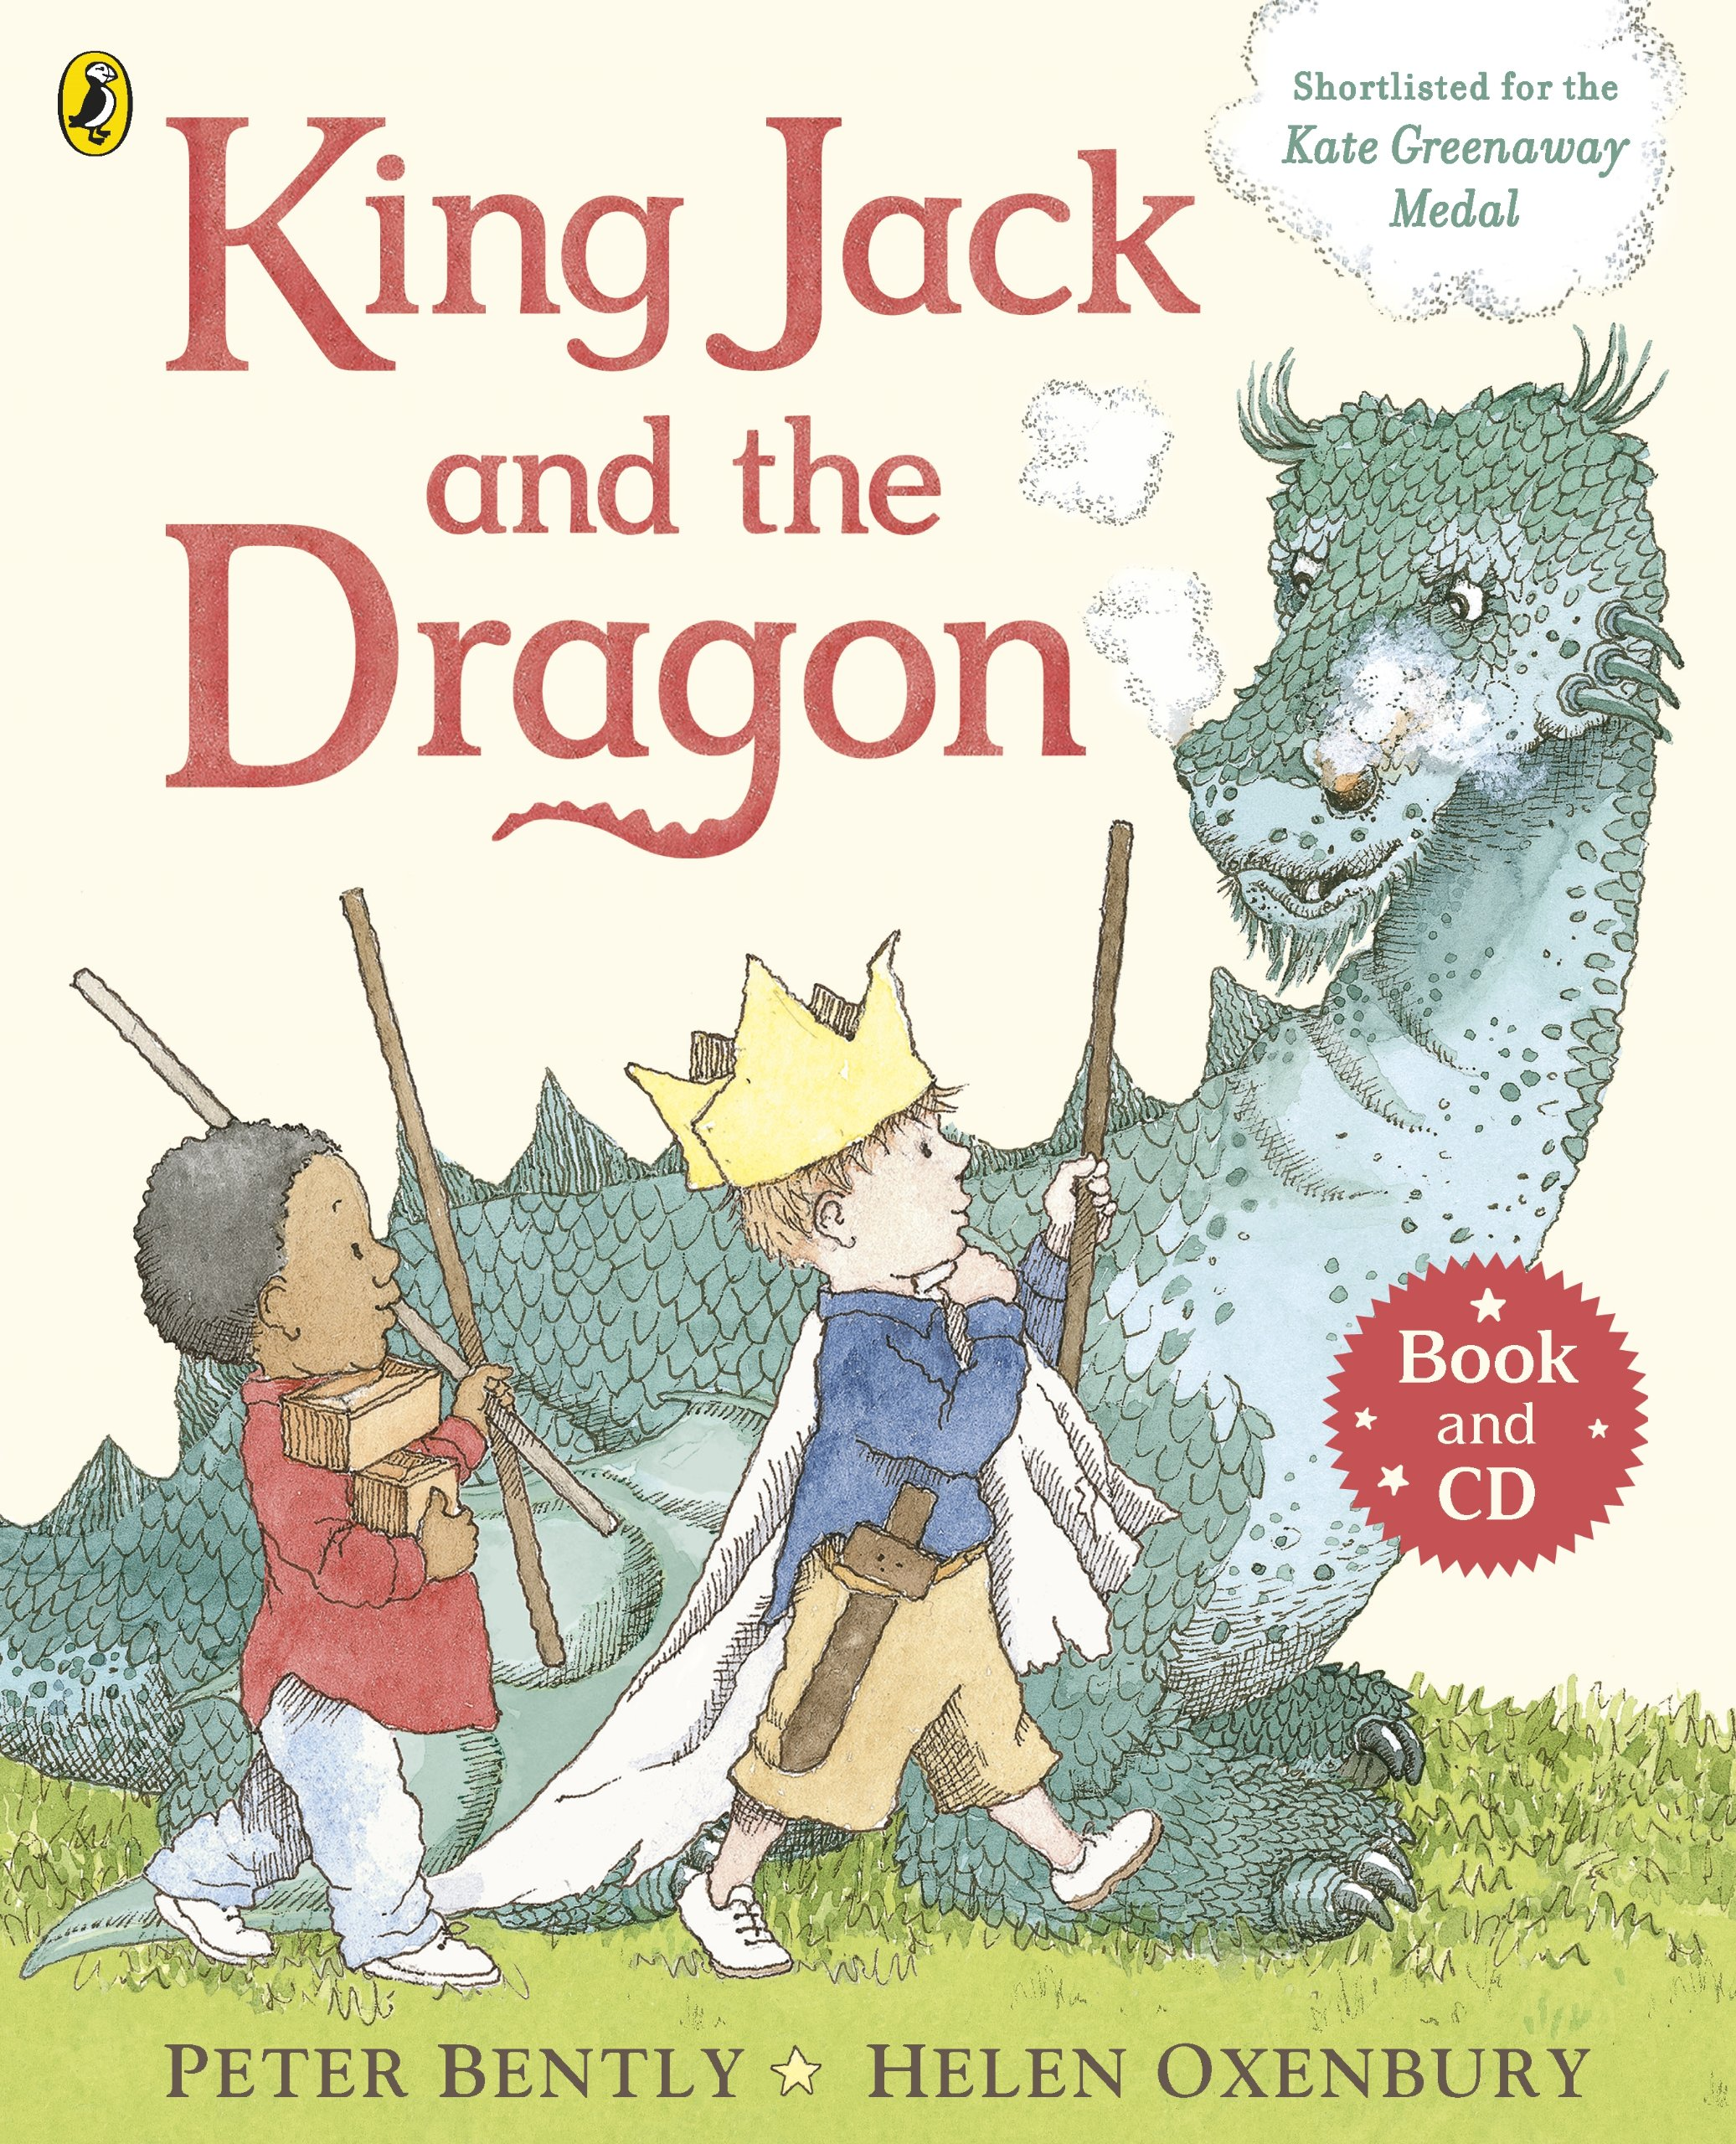 Photo of King Jack and the Dragon by Peter Bently Review